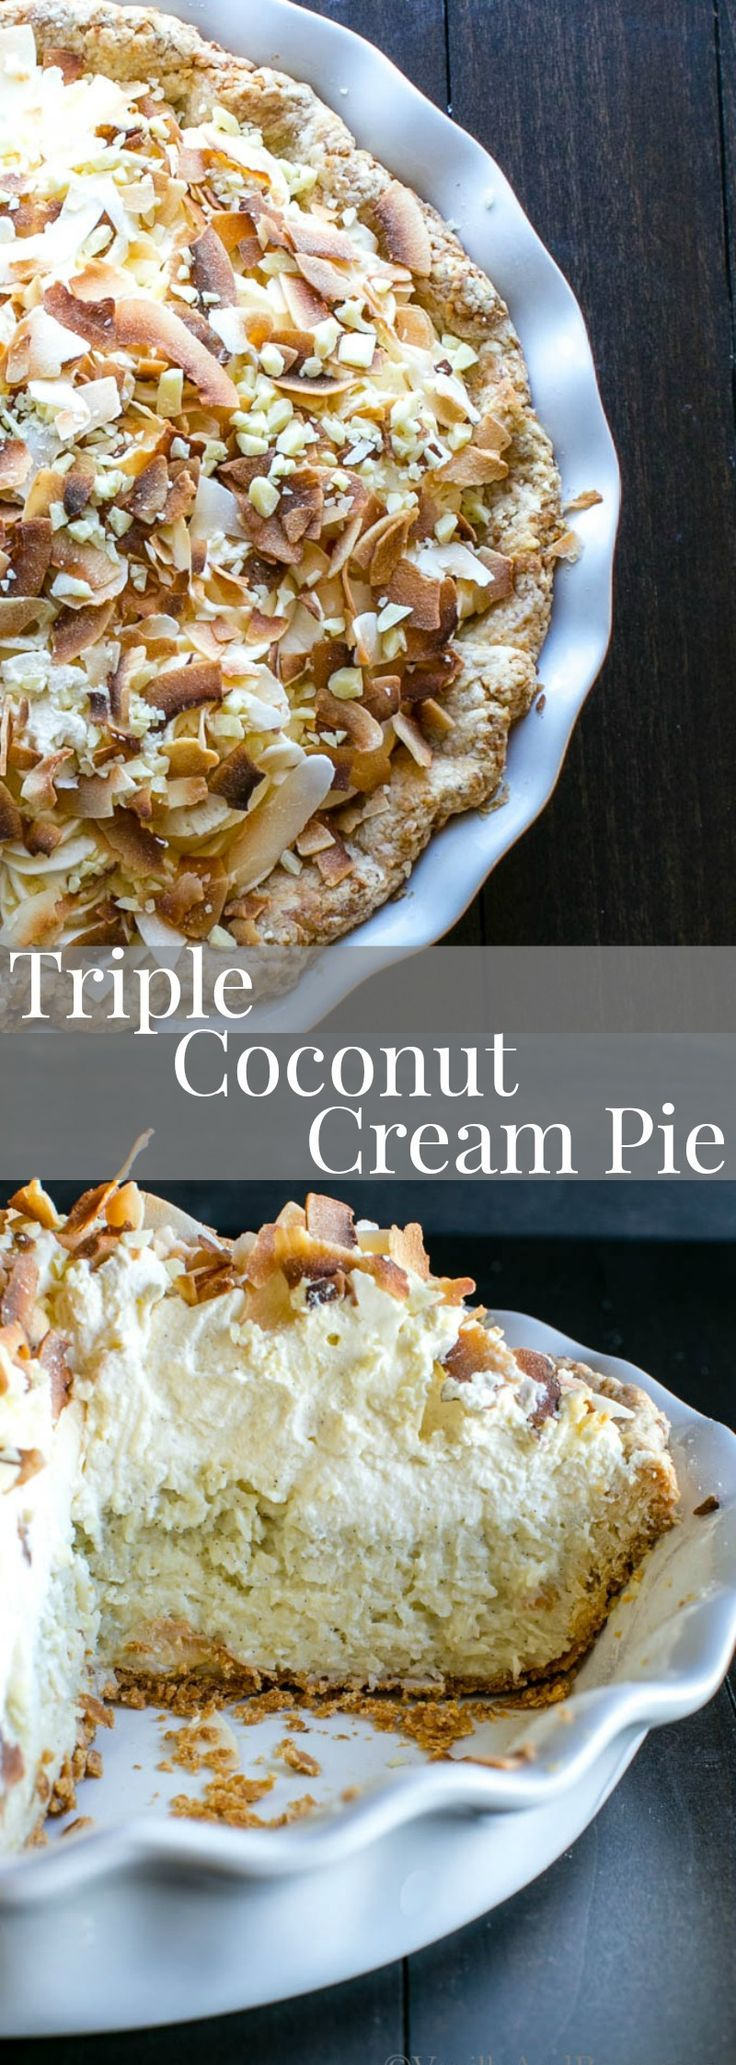 Creamy, sweet, crunchy and oh so coconutty. Try this Triple Coconut Creme Pie for your next special occasion! Recipe